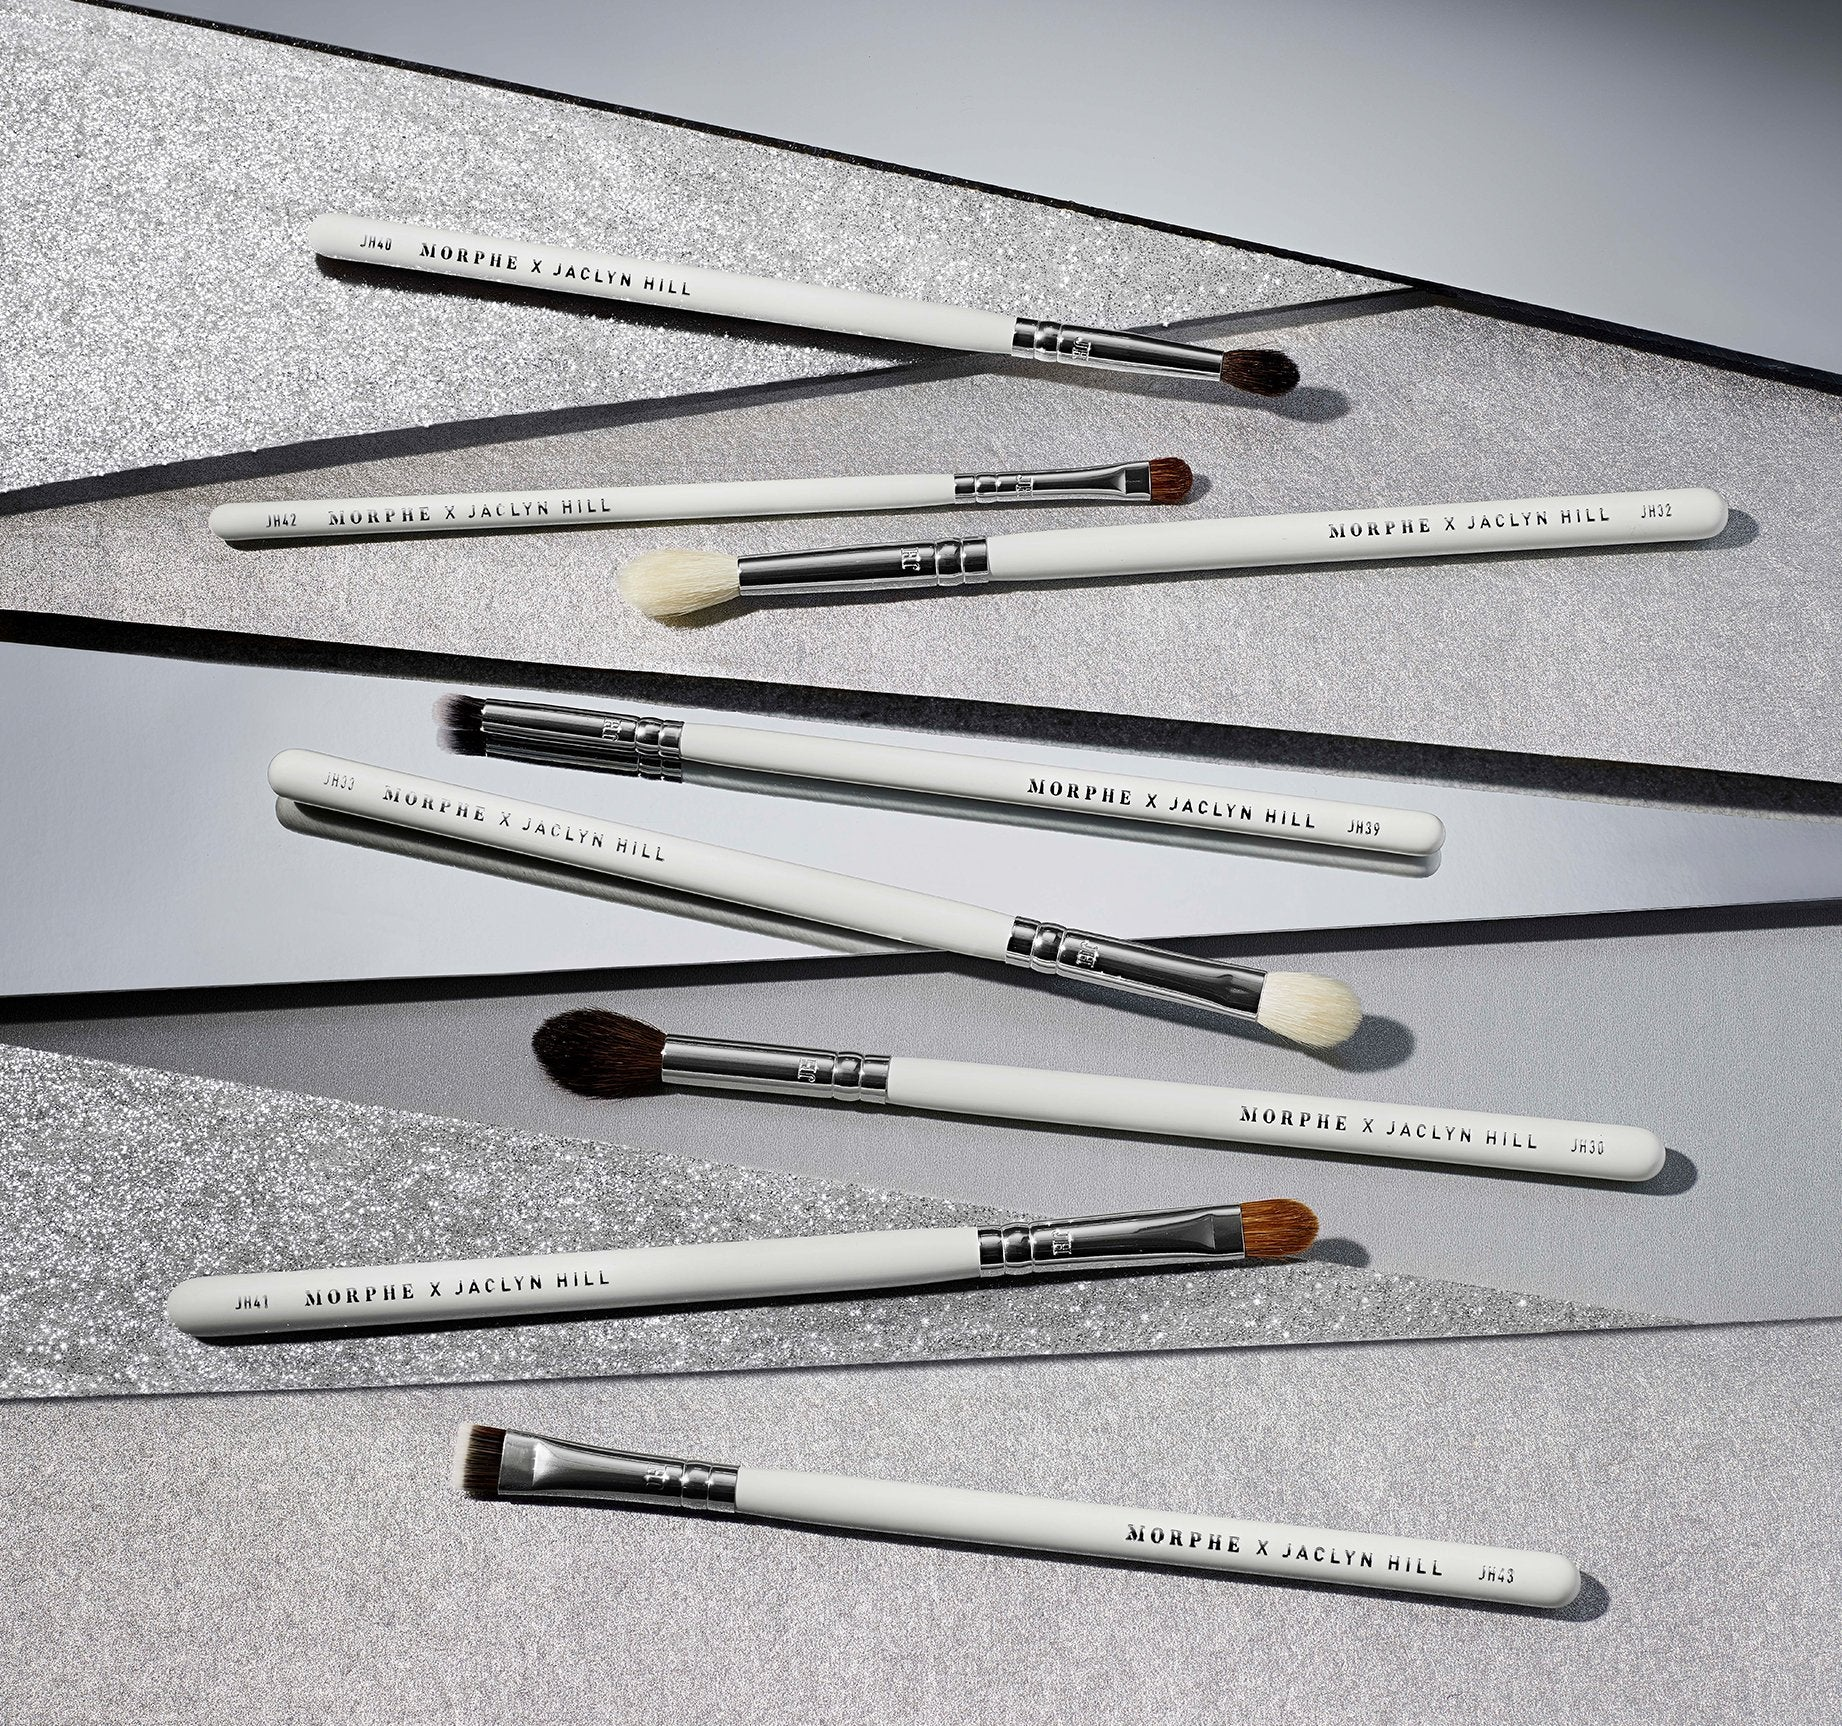 MORPHE THE EYE MASTER COLLECTION